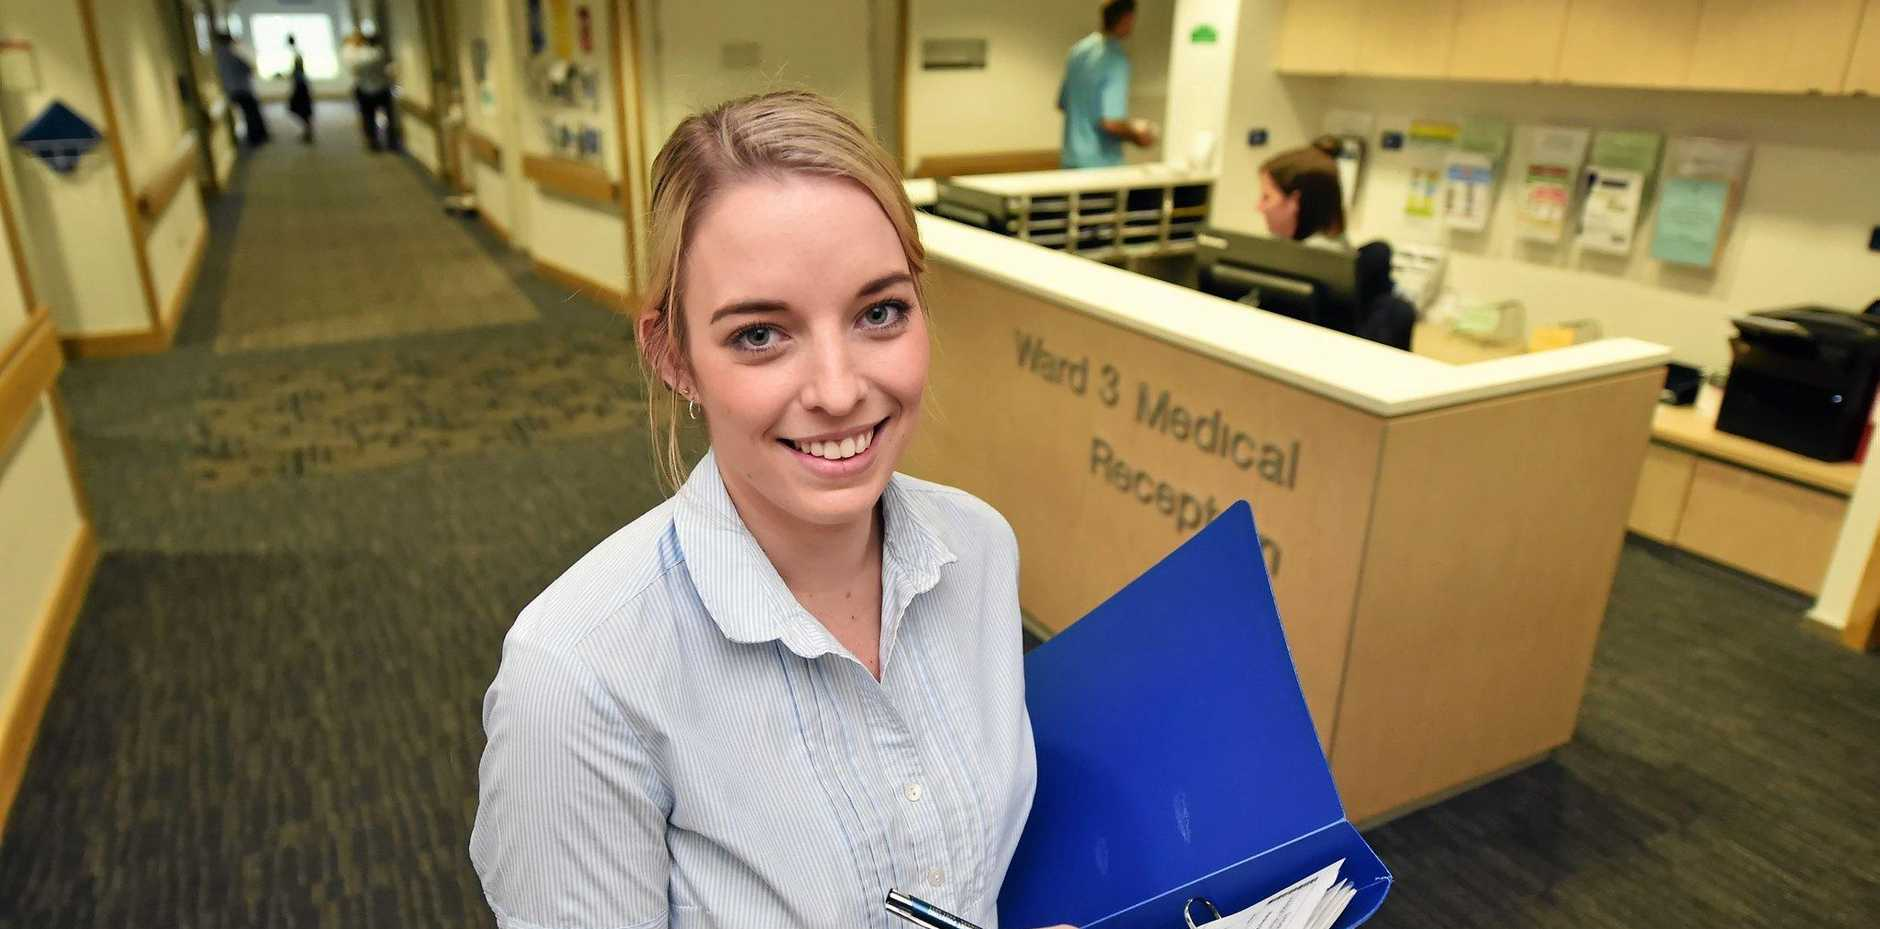 WORTHY AWARD: Ashleigh Coombs, a registered nurse working at the Sunshine Coast University Private Hospital, welcomed news that nursing has been named the most trustworthy profession in Australia .